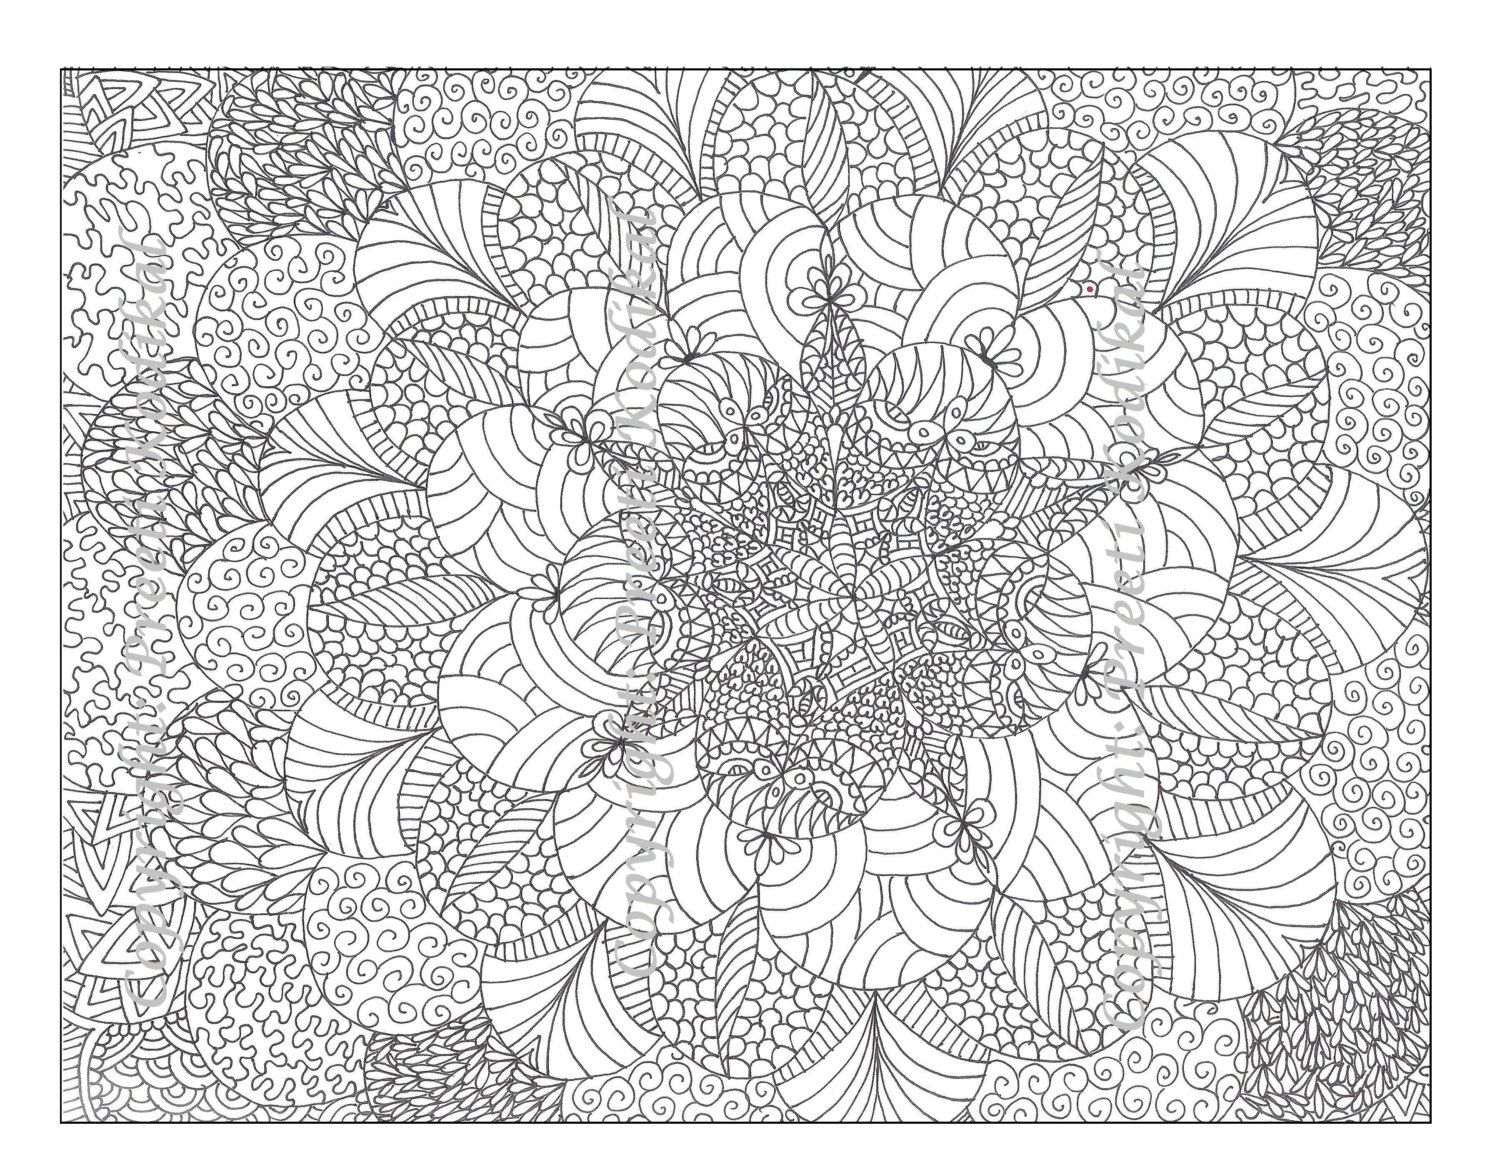 Coloring pages for 9 and up - Pen Illustration Printable Coloring Page Zentangle Inspired Henna Or Mehndi Inspired Indian Designs Like Mandala Abstract